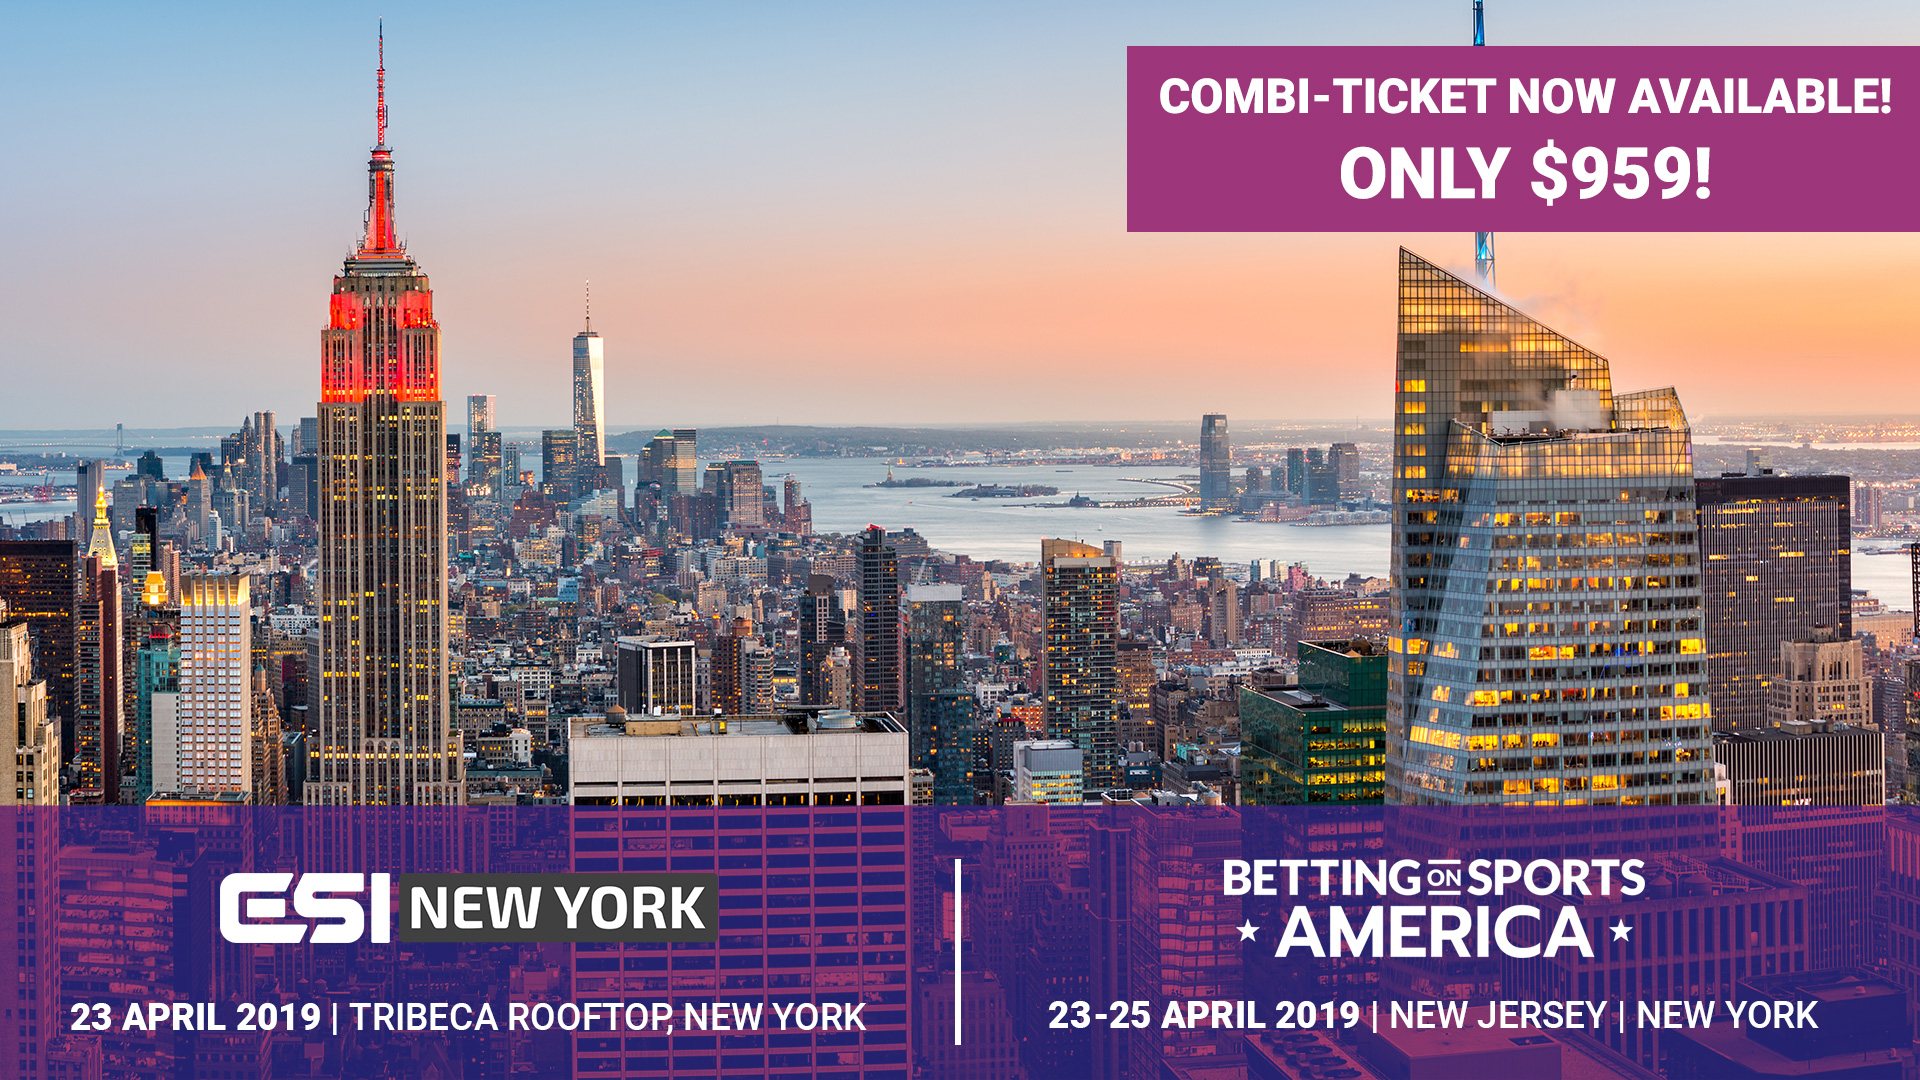 ESI NY PROMO 1920x1080px Combo - Combi-ticket for ESI New York and Betting on Sports America now available